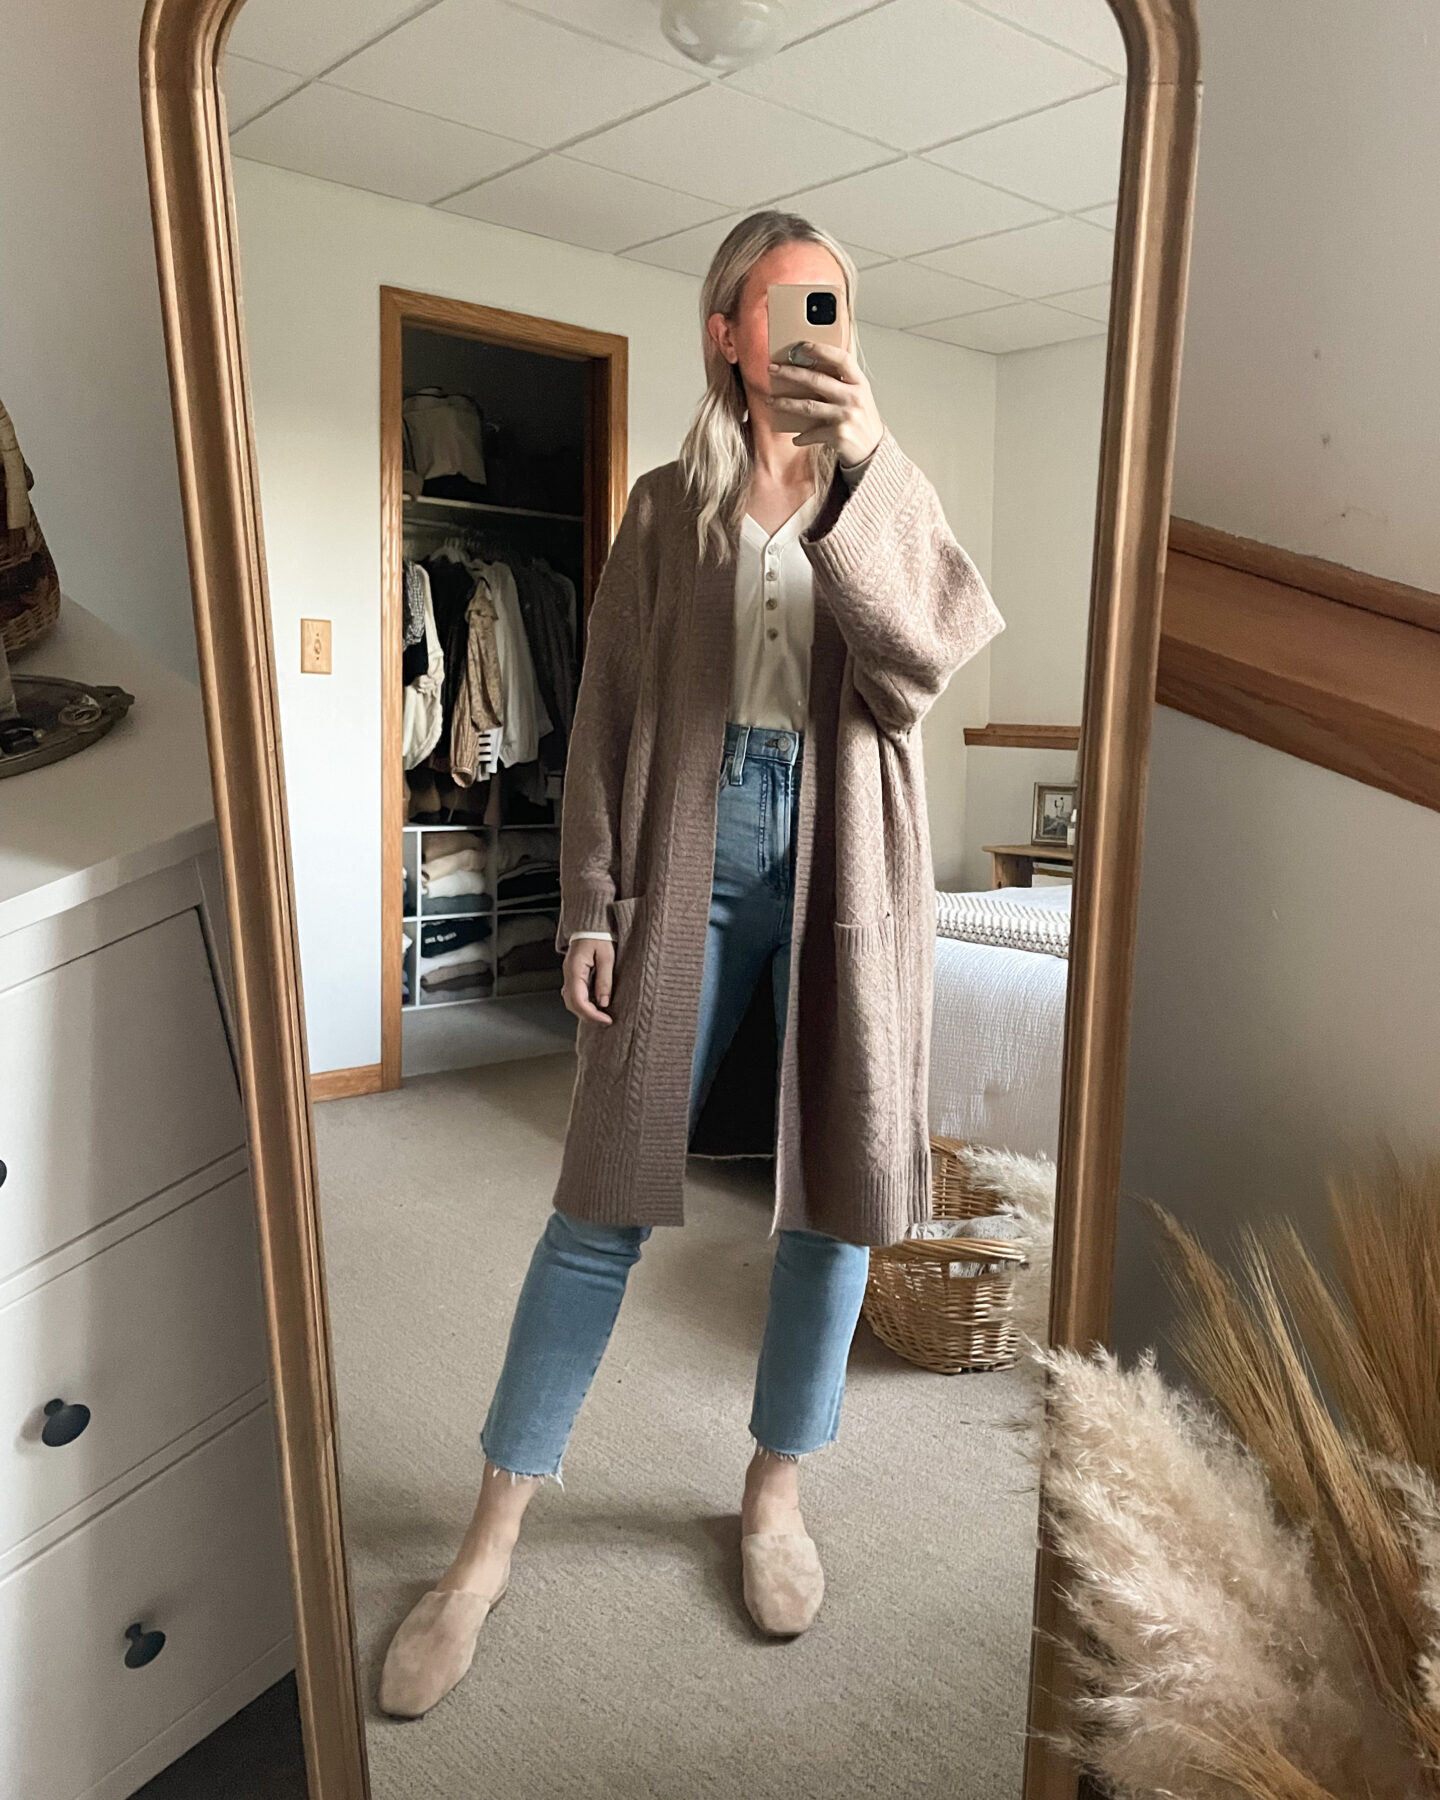 Karin Emily wears an oversized camel cardigan, light wash distressed jeans, and nude mules